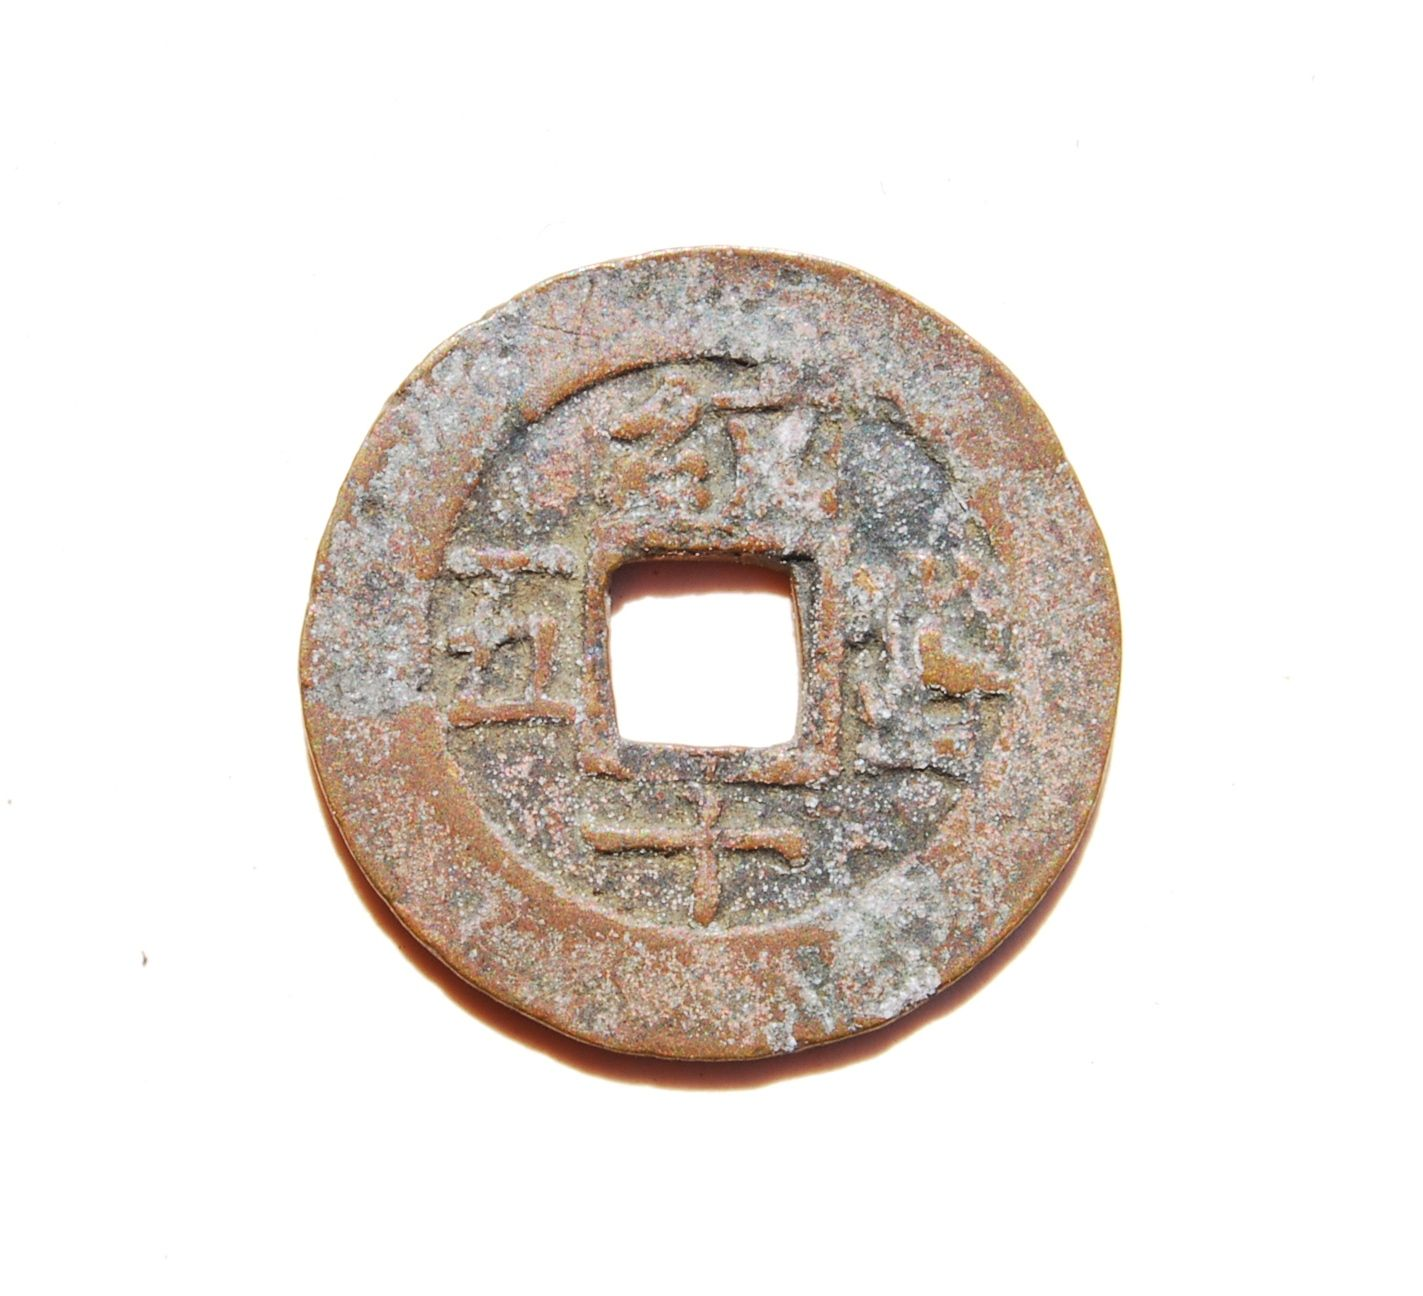 2a.  Reverse side of a Chang Ping Tong Bao (常平通寶), 10 cash coin cast in Seoul, from 1790-1830. 32mm in size; 11+ grams in weight.